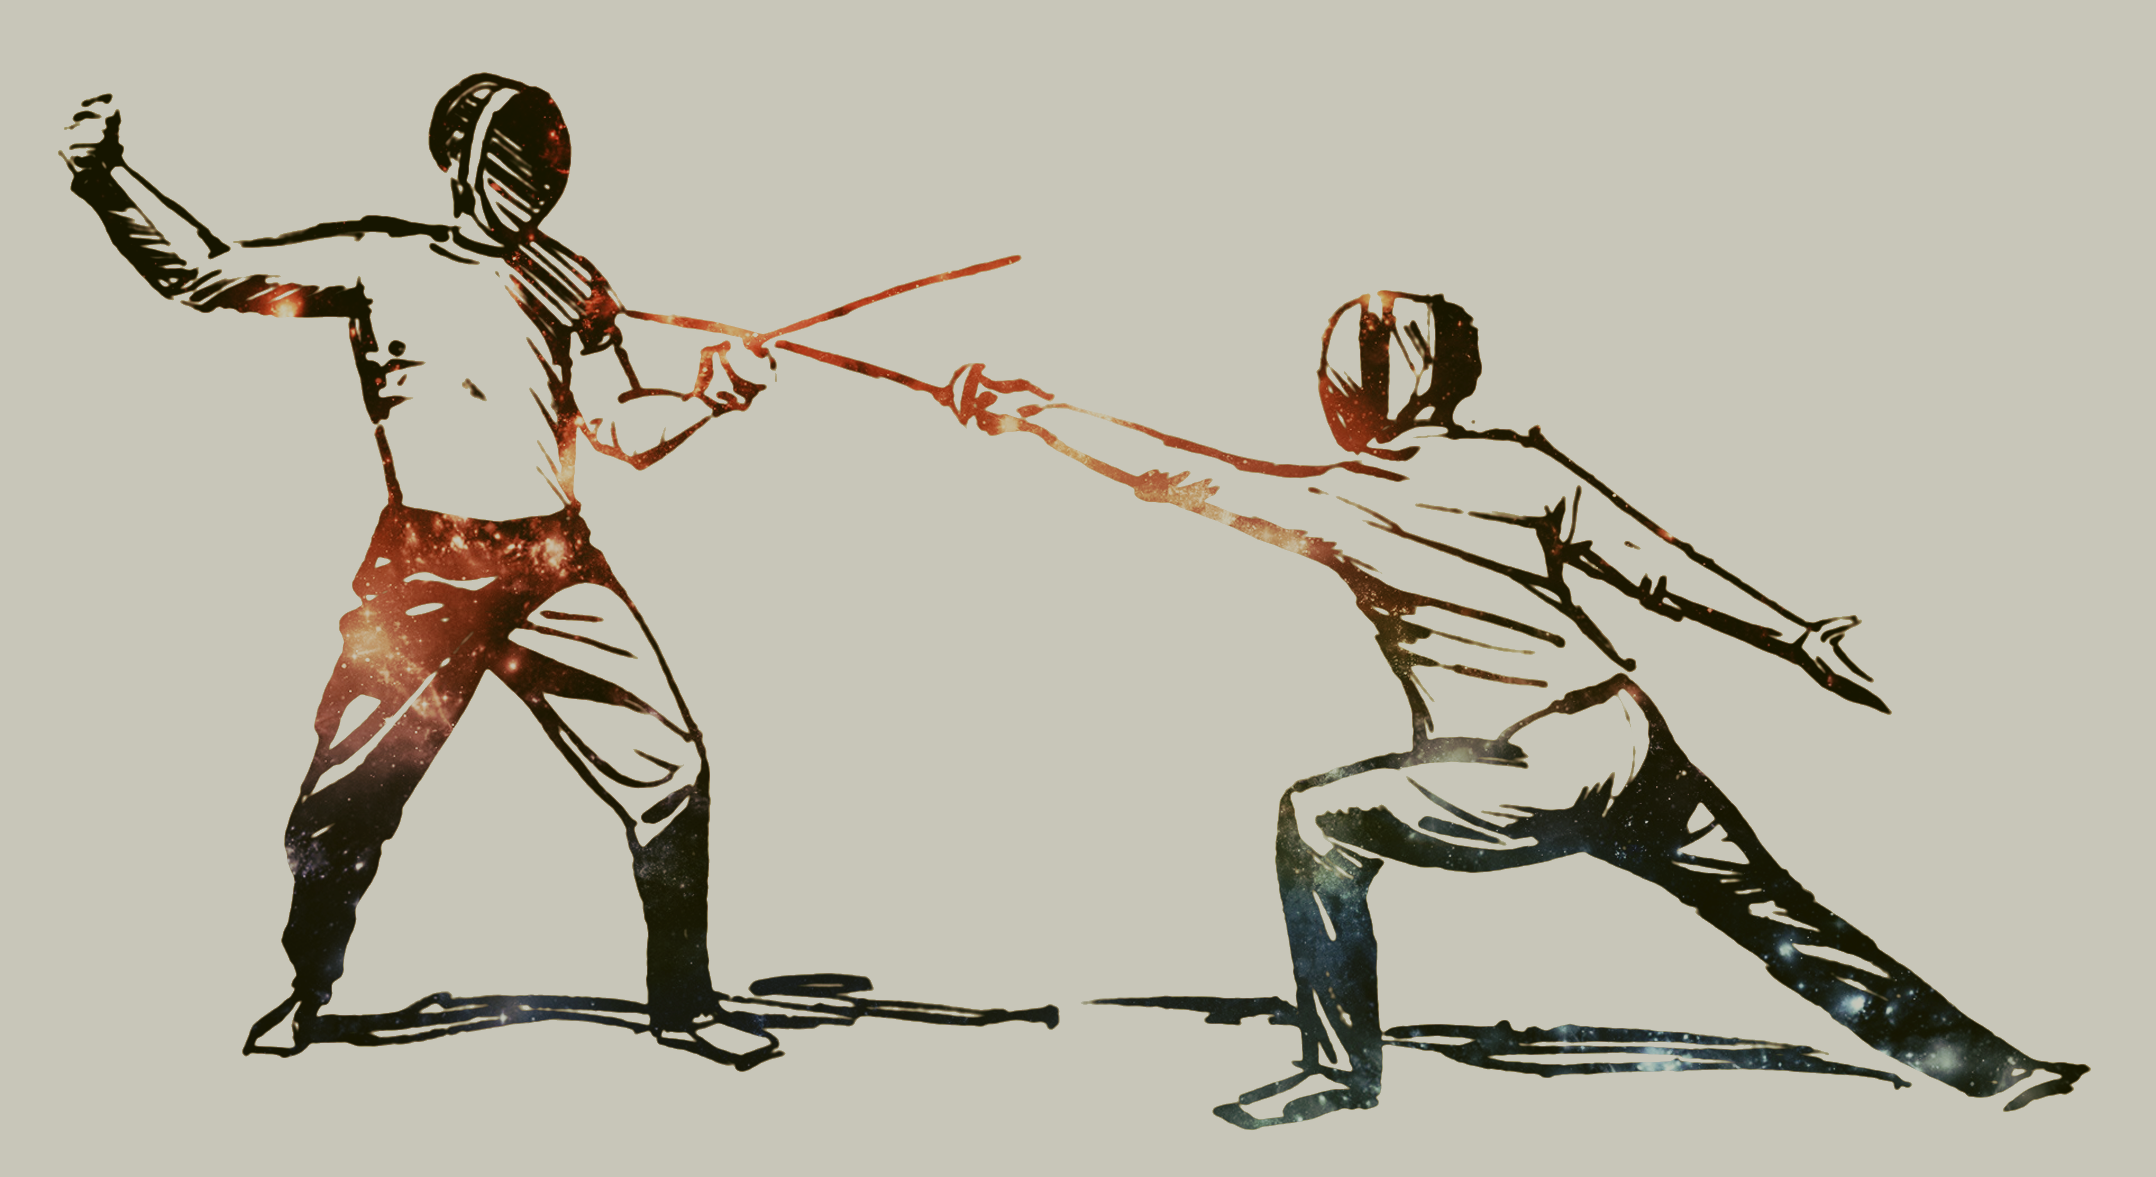 PC 2156x1177 px Fencing Wallpaper, BsnSCB